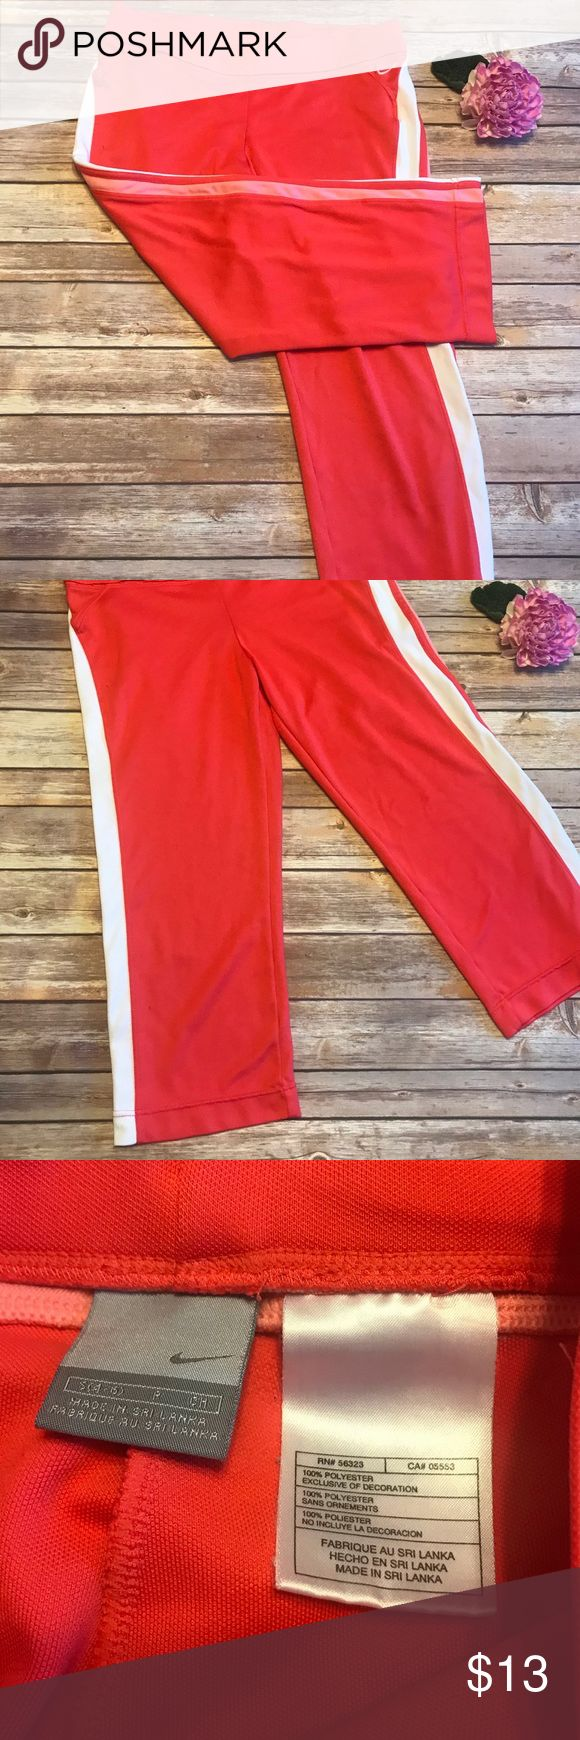 Nike coral Capri pants Nike coral Capri pants   ▪️ Measurements flat: length 30' waist 16'  inseam 23' rise 8.5 ▪️Condition: pre owned, some fraying/loose strings on waist band (noted on last 2pics) but over all great condition Nike Pants Track Pants & Joggers